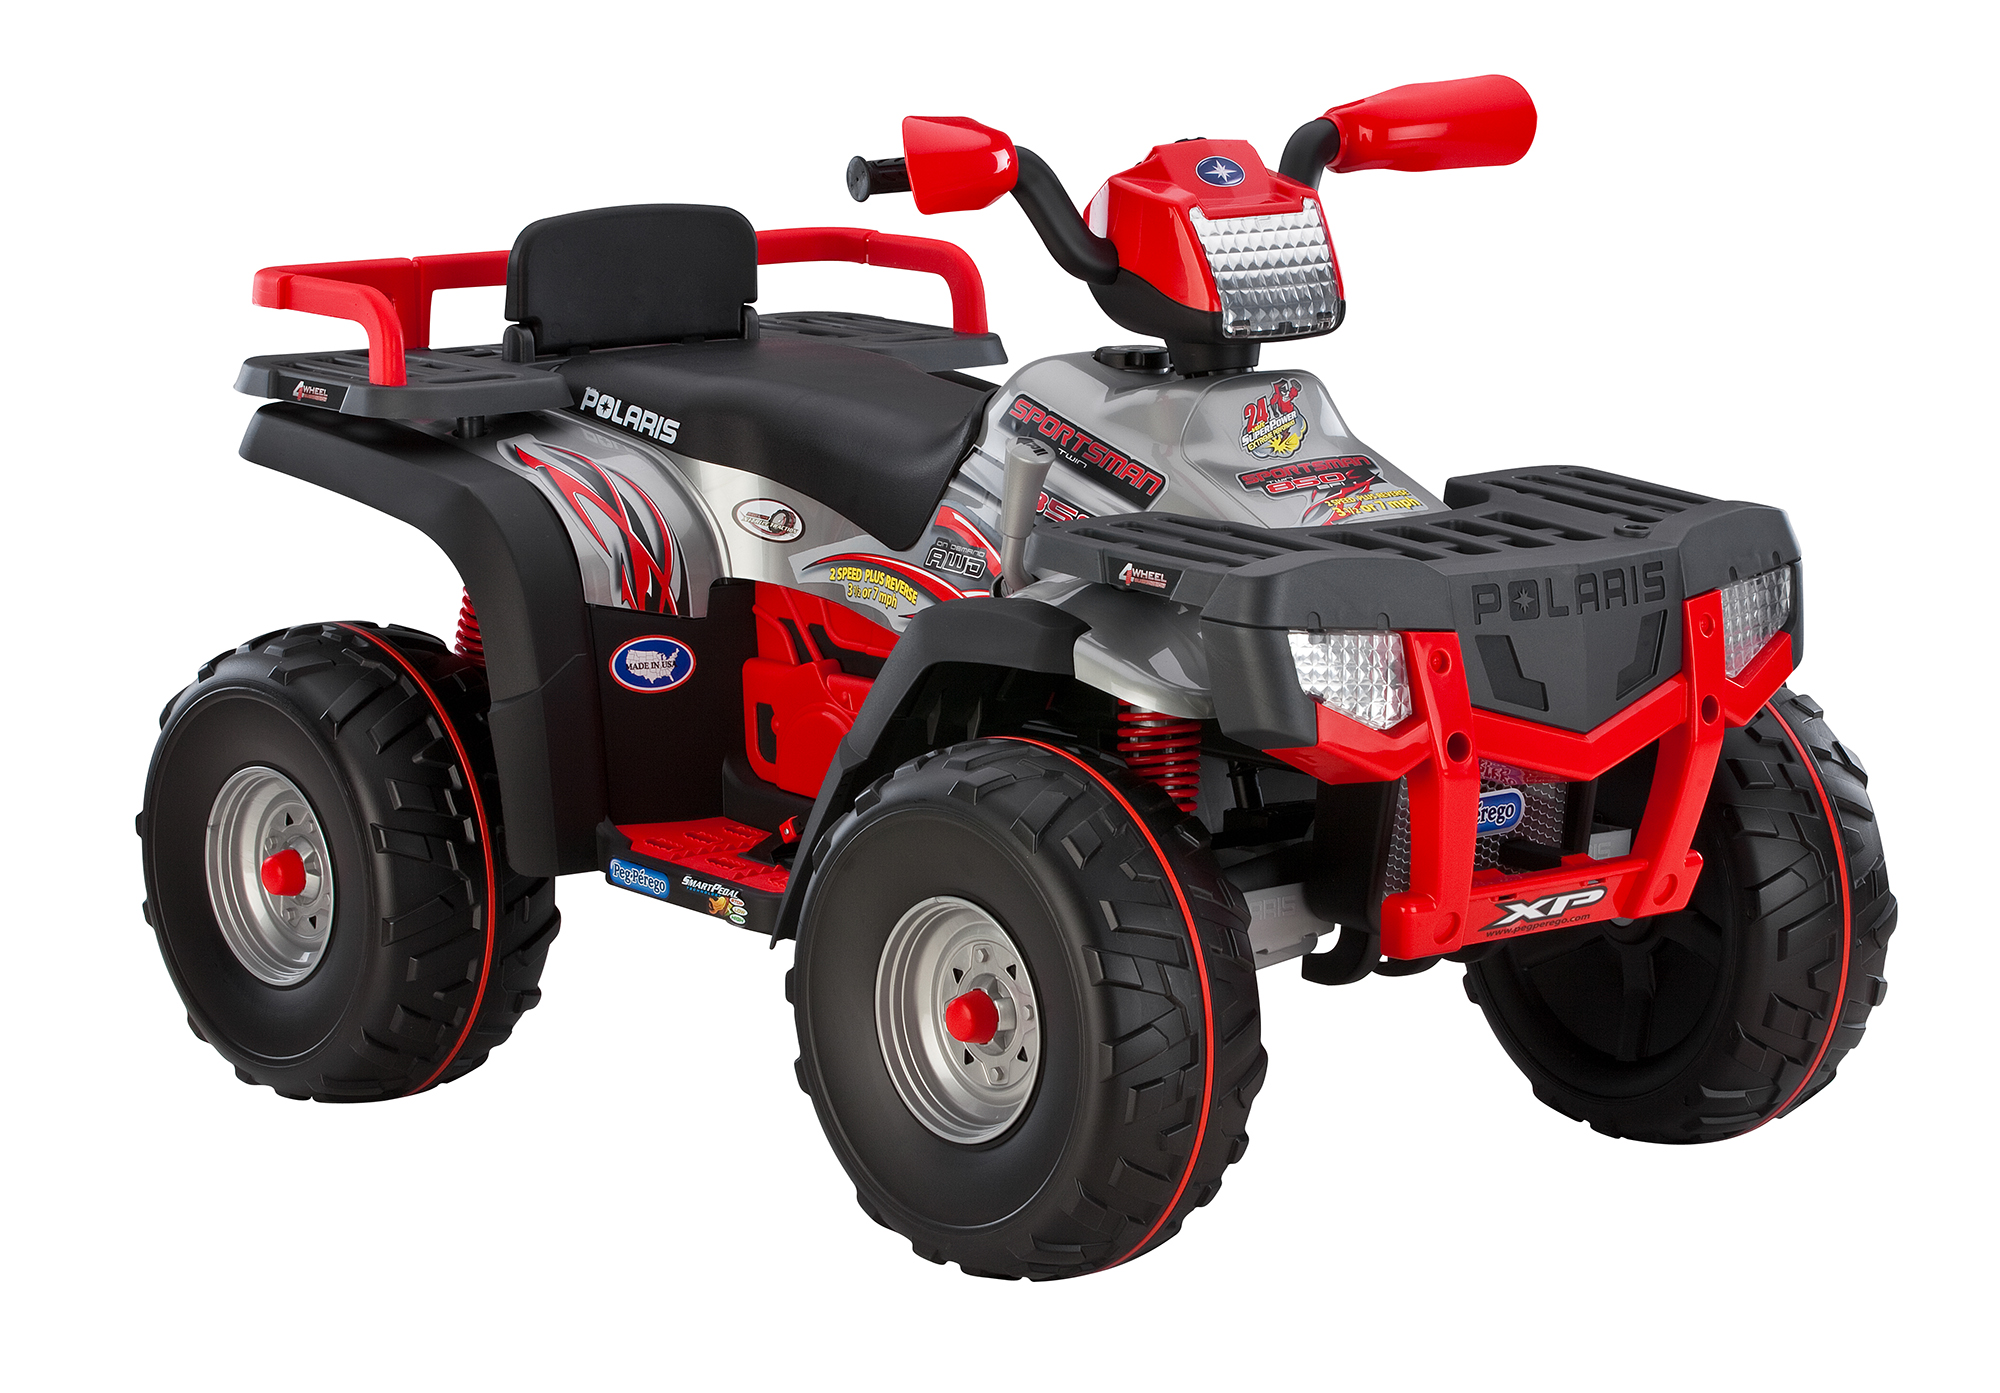 Peg Perego Recalls Children's Ride-On Vehicles Due to Fire and ...